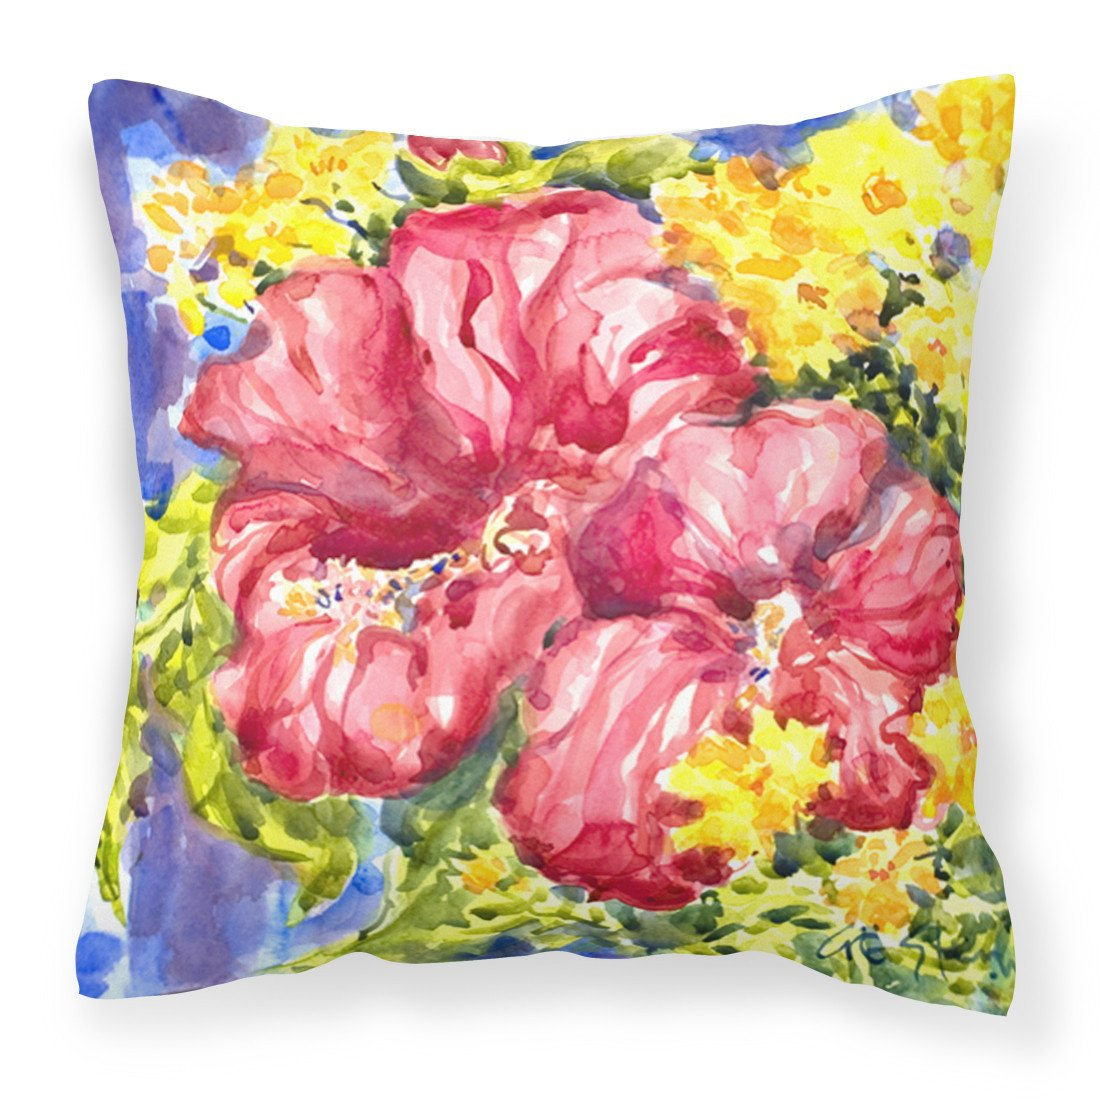 Flower - Hibiscus Decorative   Canvas Fabric Pillow by Caroline's Treasures